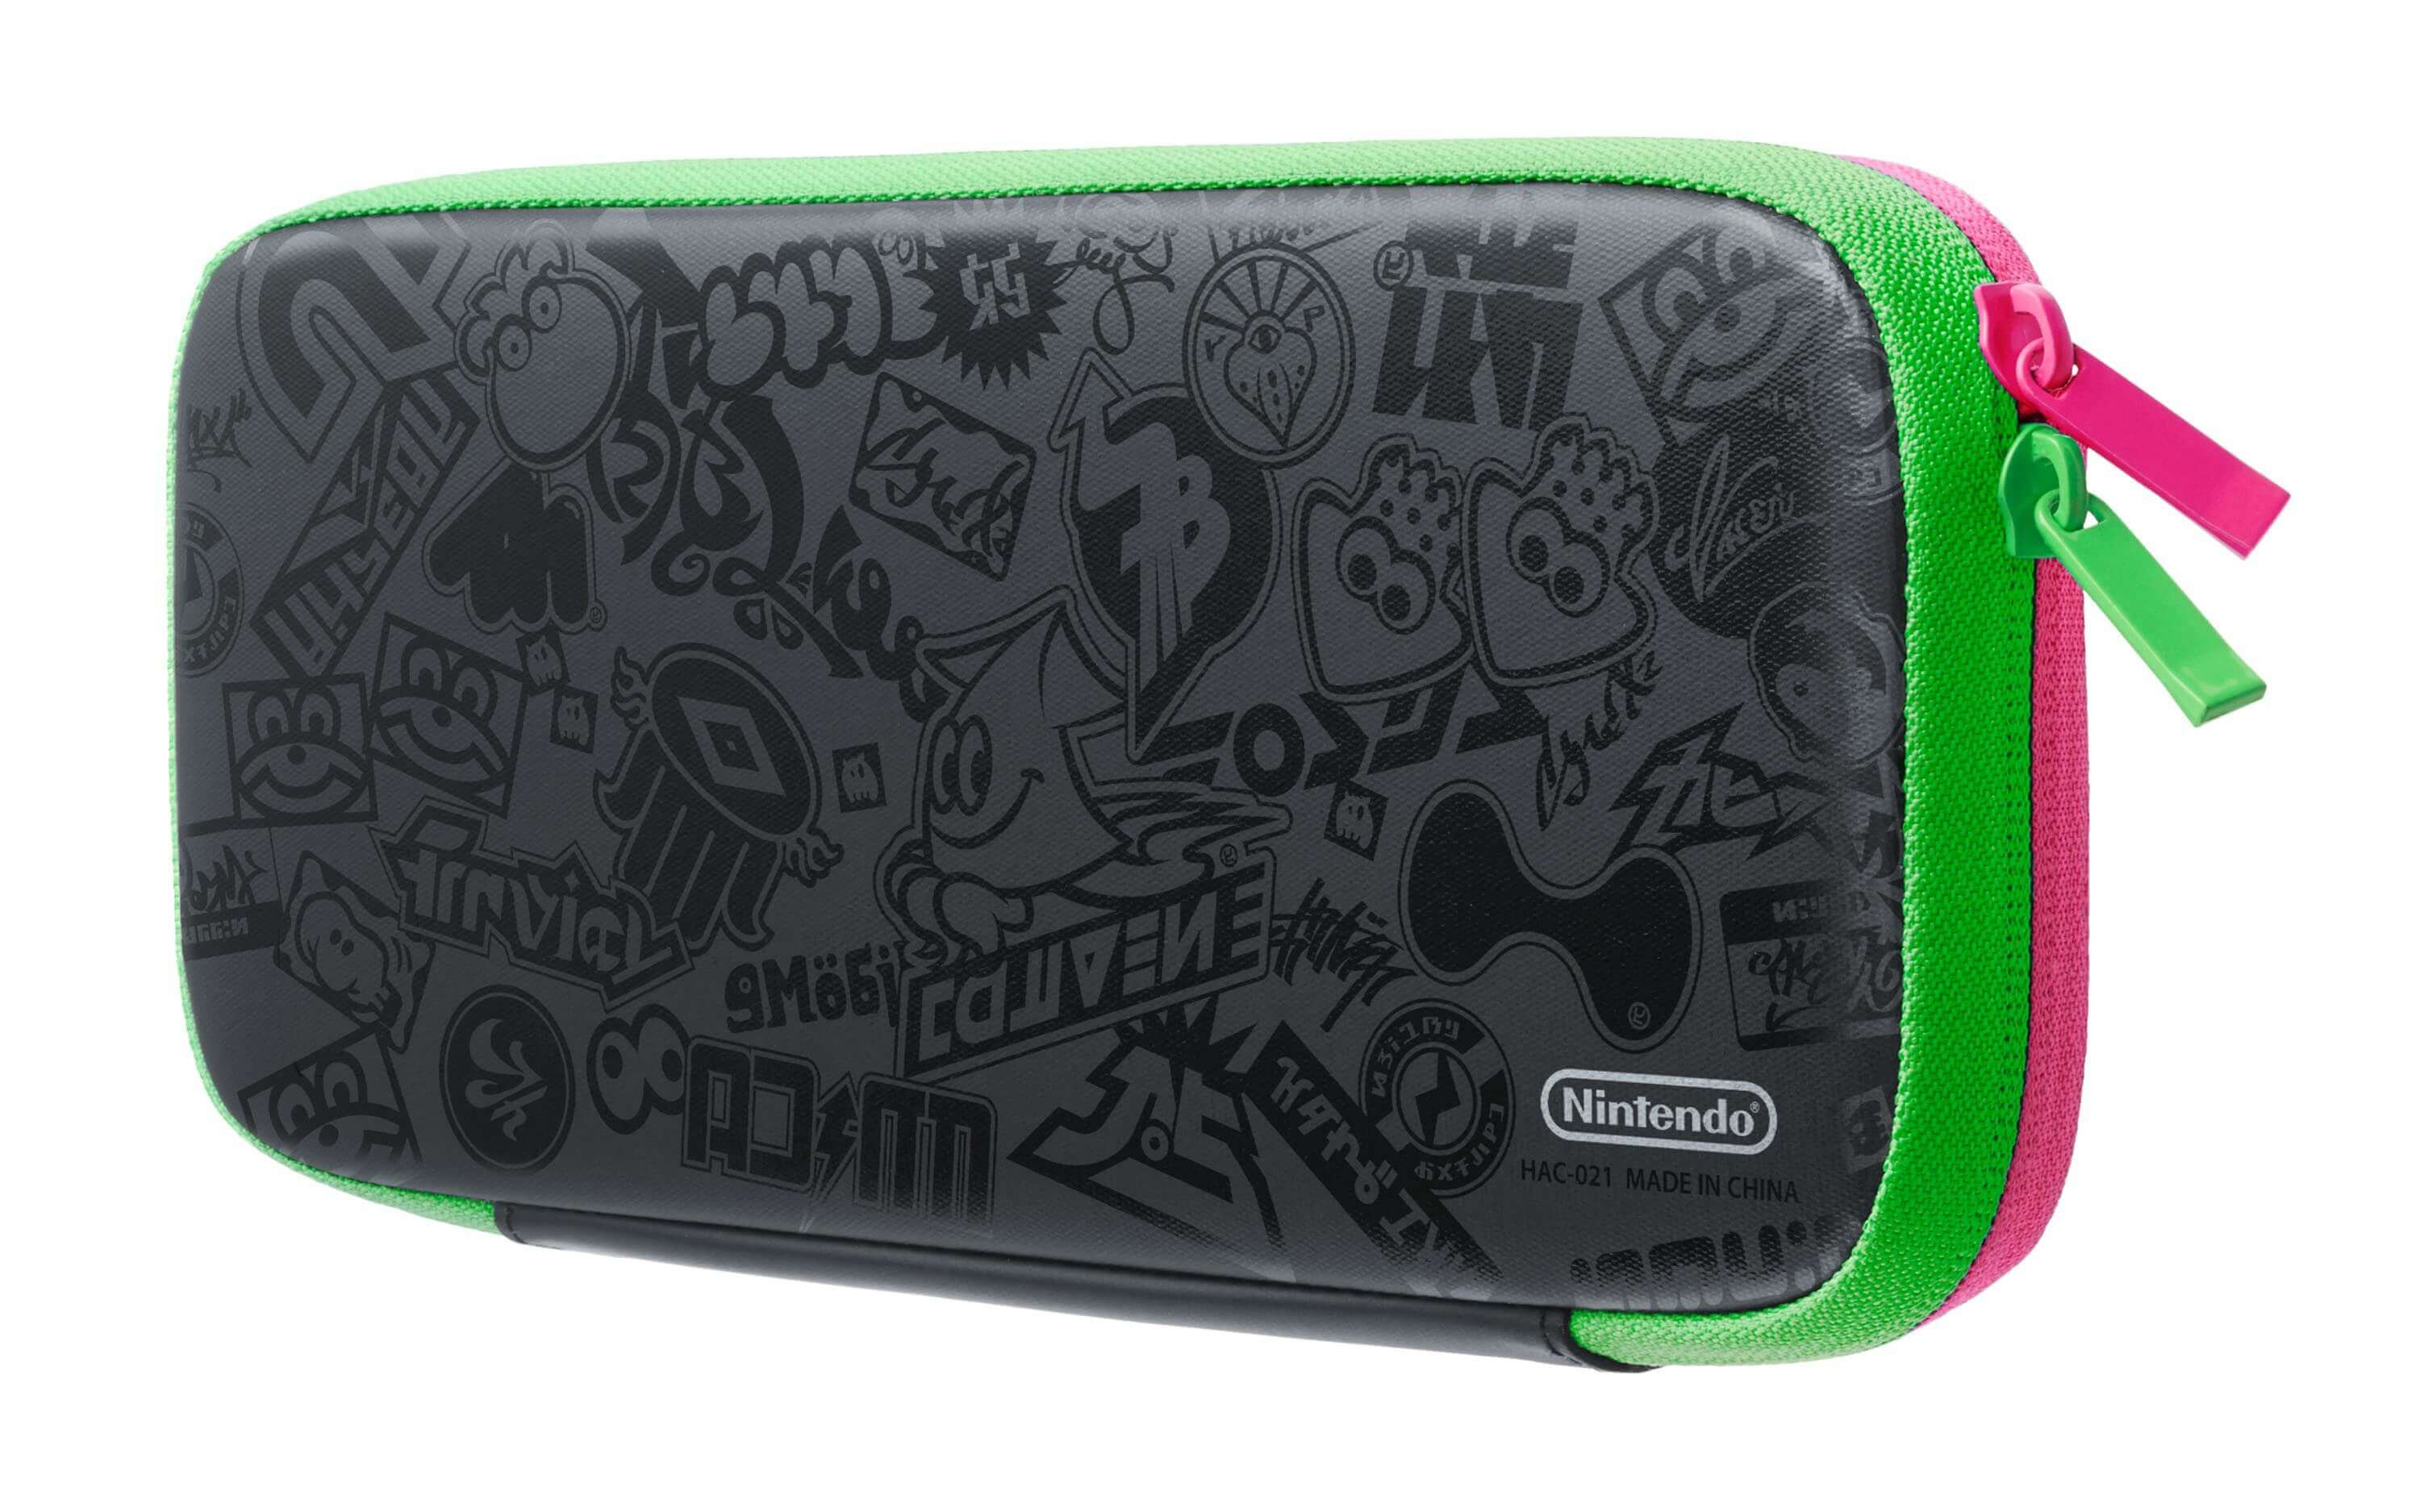 Nintendo Switch Carrying Case Splatoon 2 Edition & Screen Protector